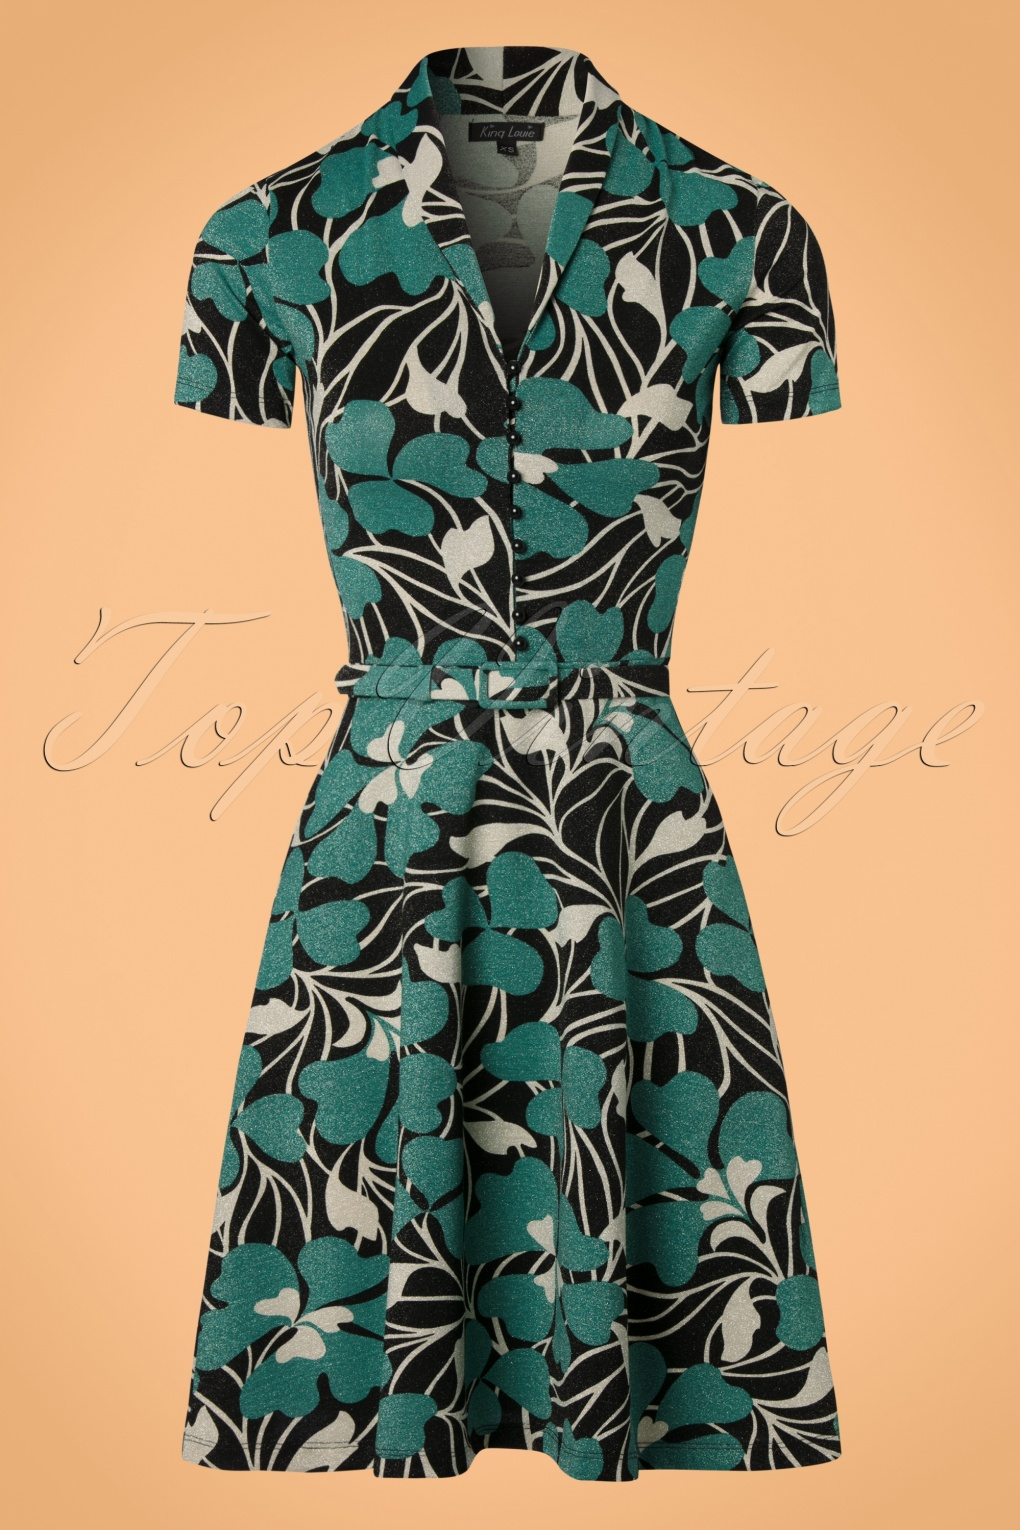 1960s Style Dresses- Retro Inspired Fashion 60s Emmy Shamrock Dress in Black and Cream £103.82 AT vintagedancer.com